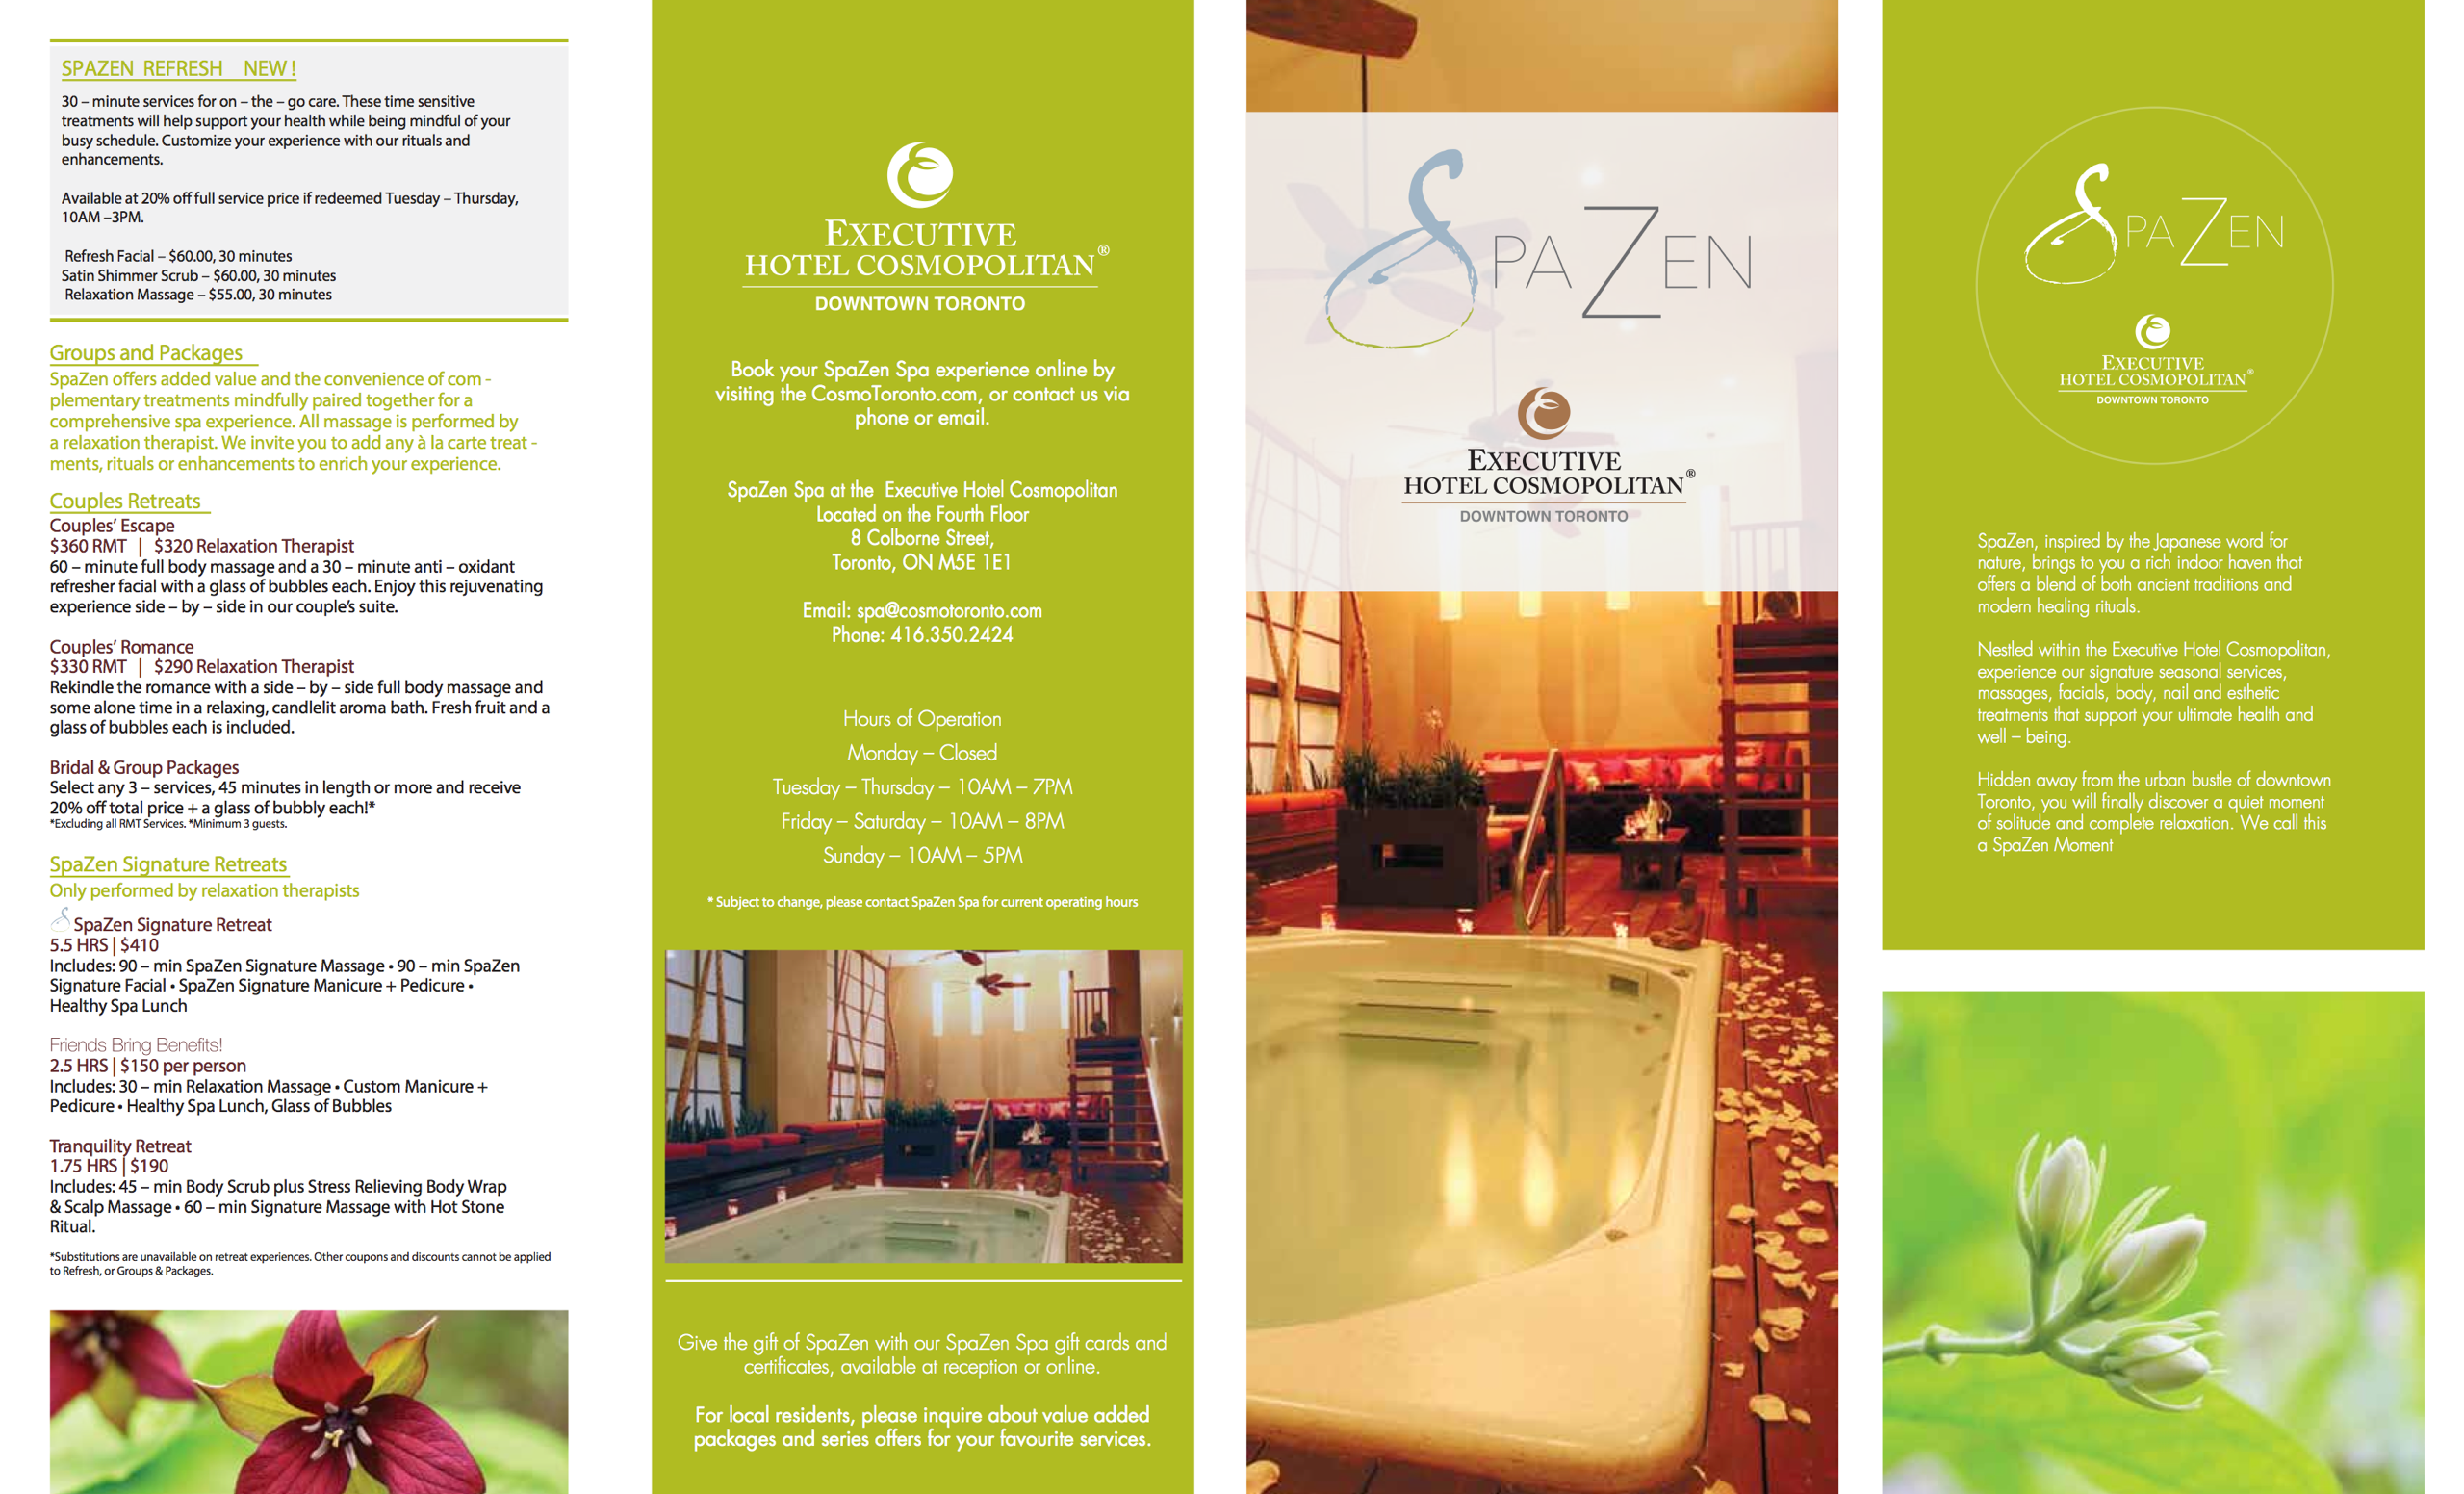 executive hotel cosmopolitan toronto internal spazen brochure - Yellow Hotel 2015